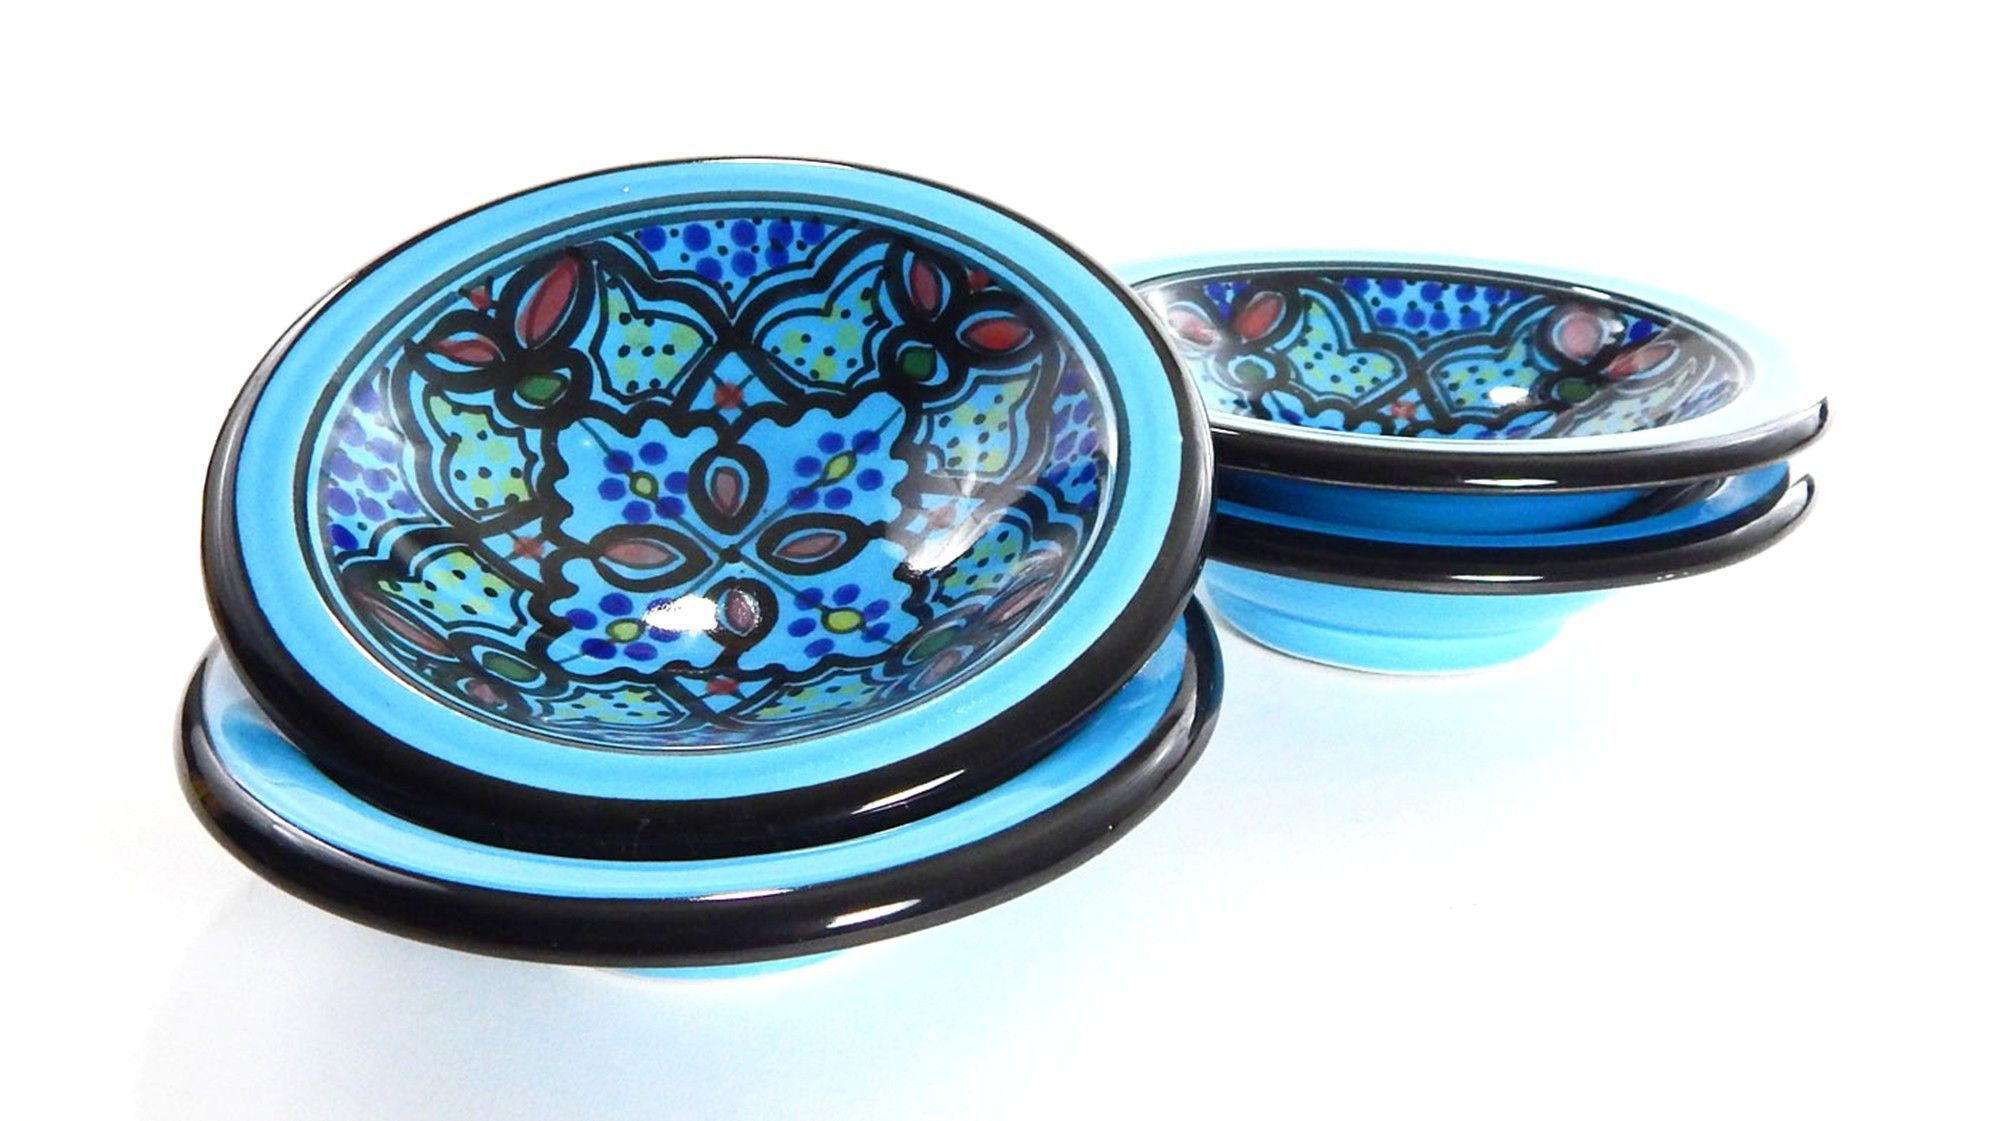 Sabrine Hand Painted Small Dishes